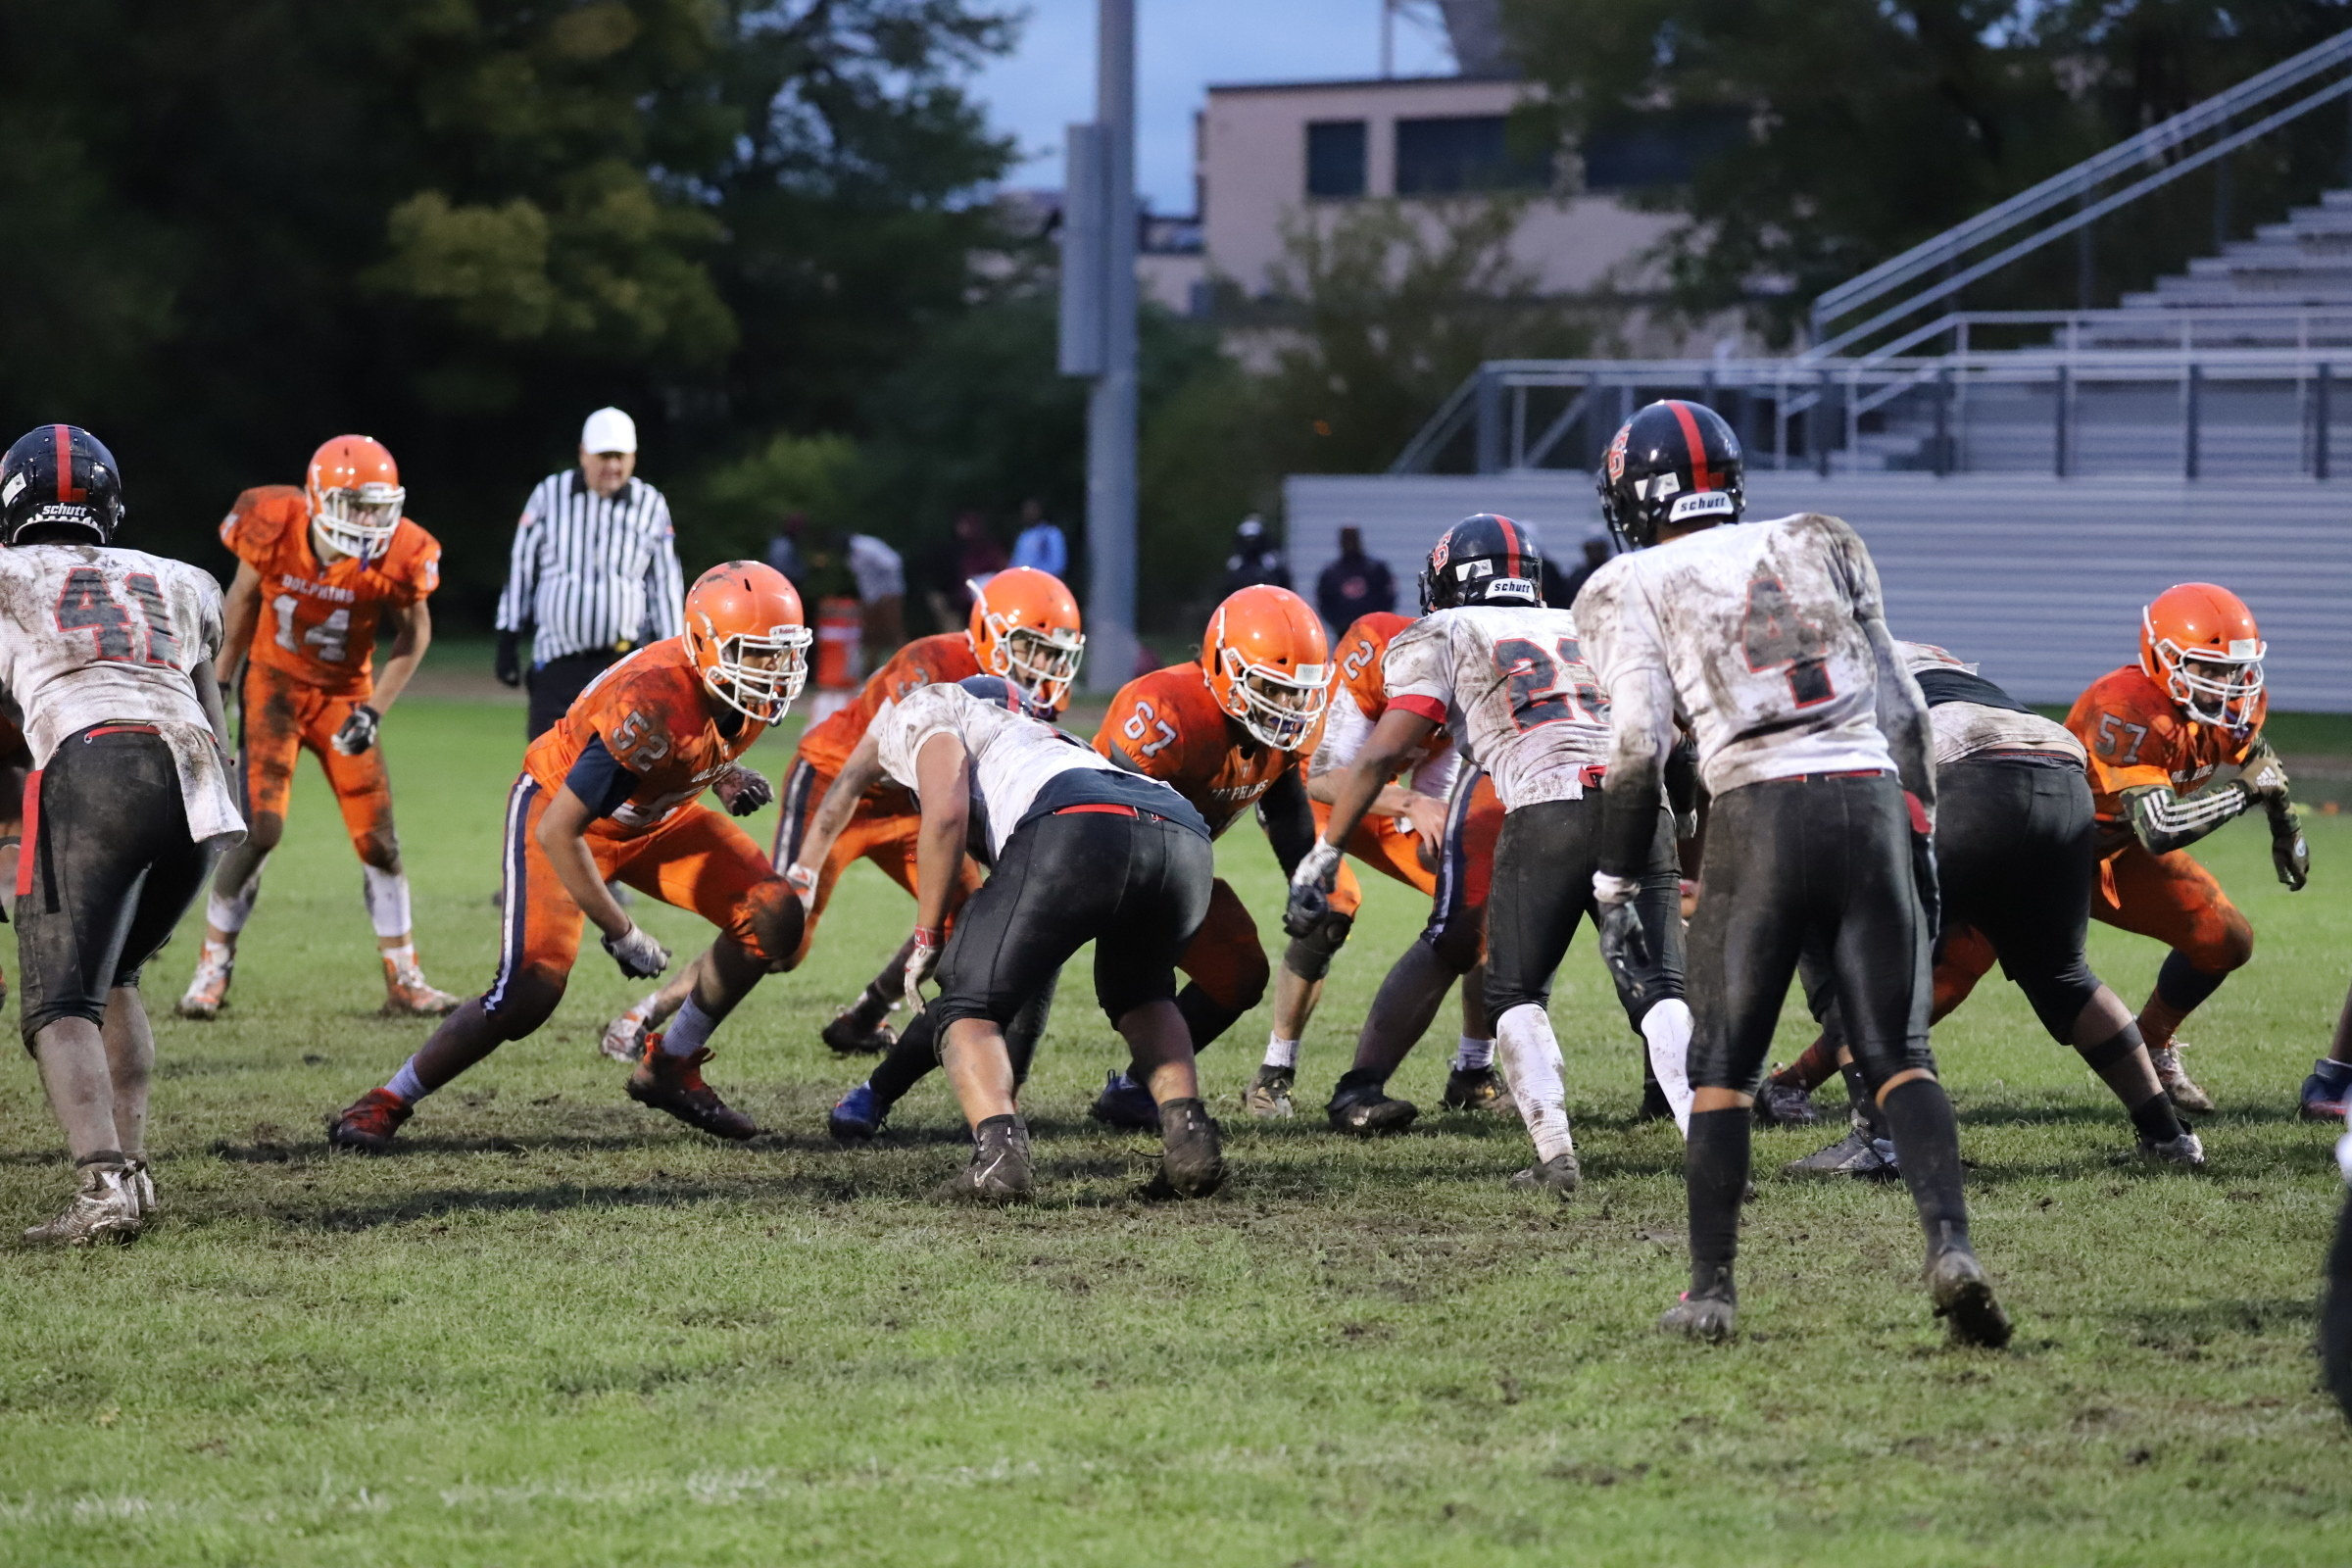 High school football players in orange and white uniforms play on a muddy field